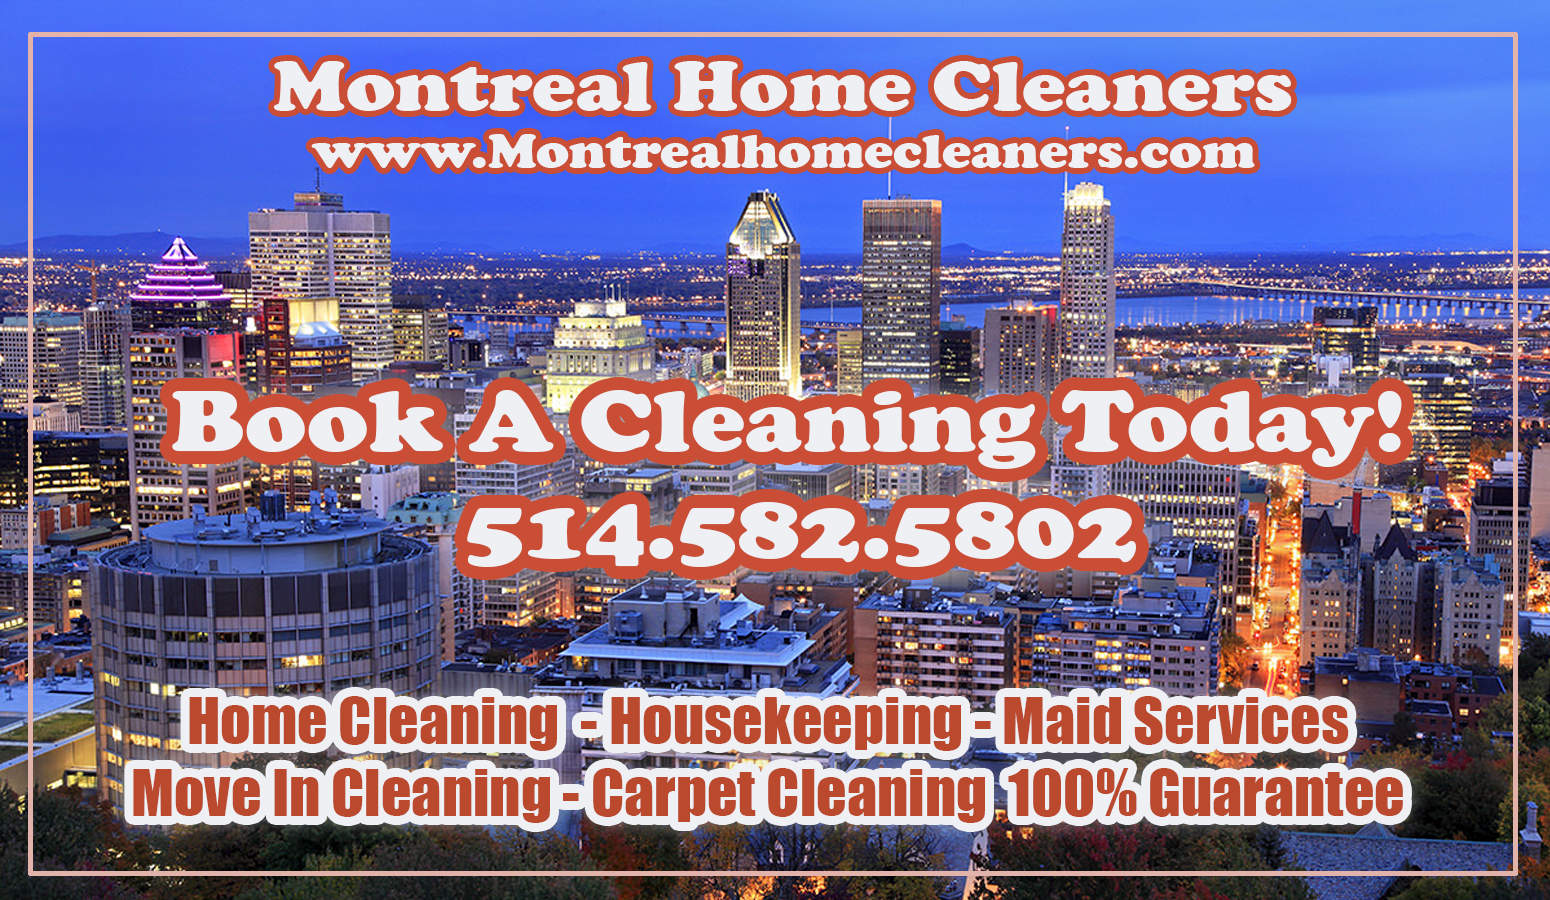 Montreal Home Cleaners | Maids | Housekeeping Services